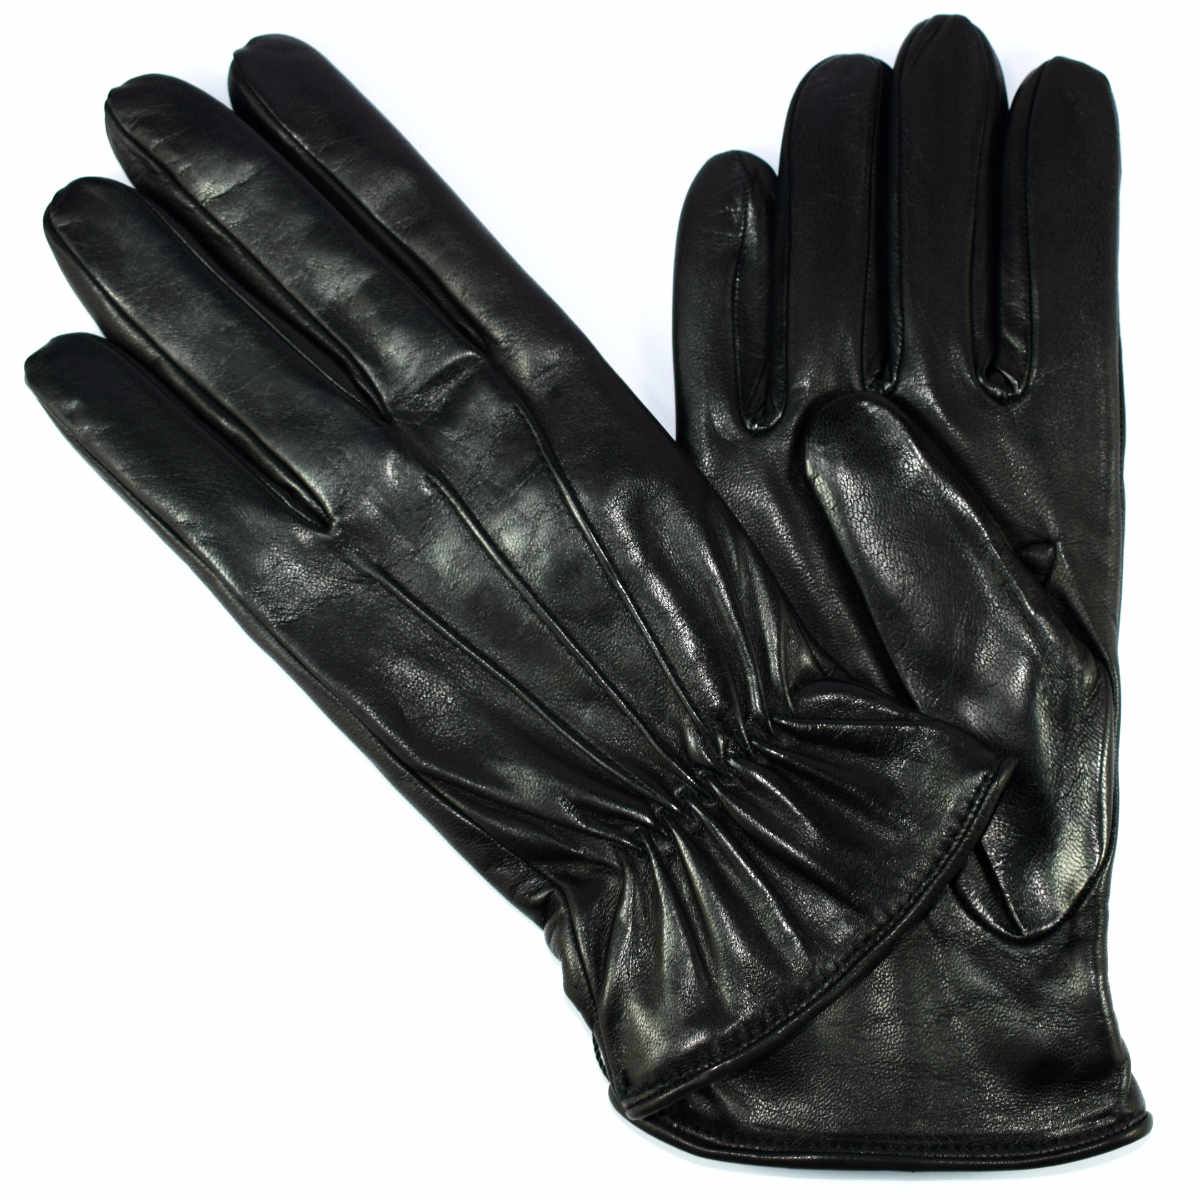 504 MEN'S LEATHER GLOVE by Bottega Fiorentina